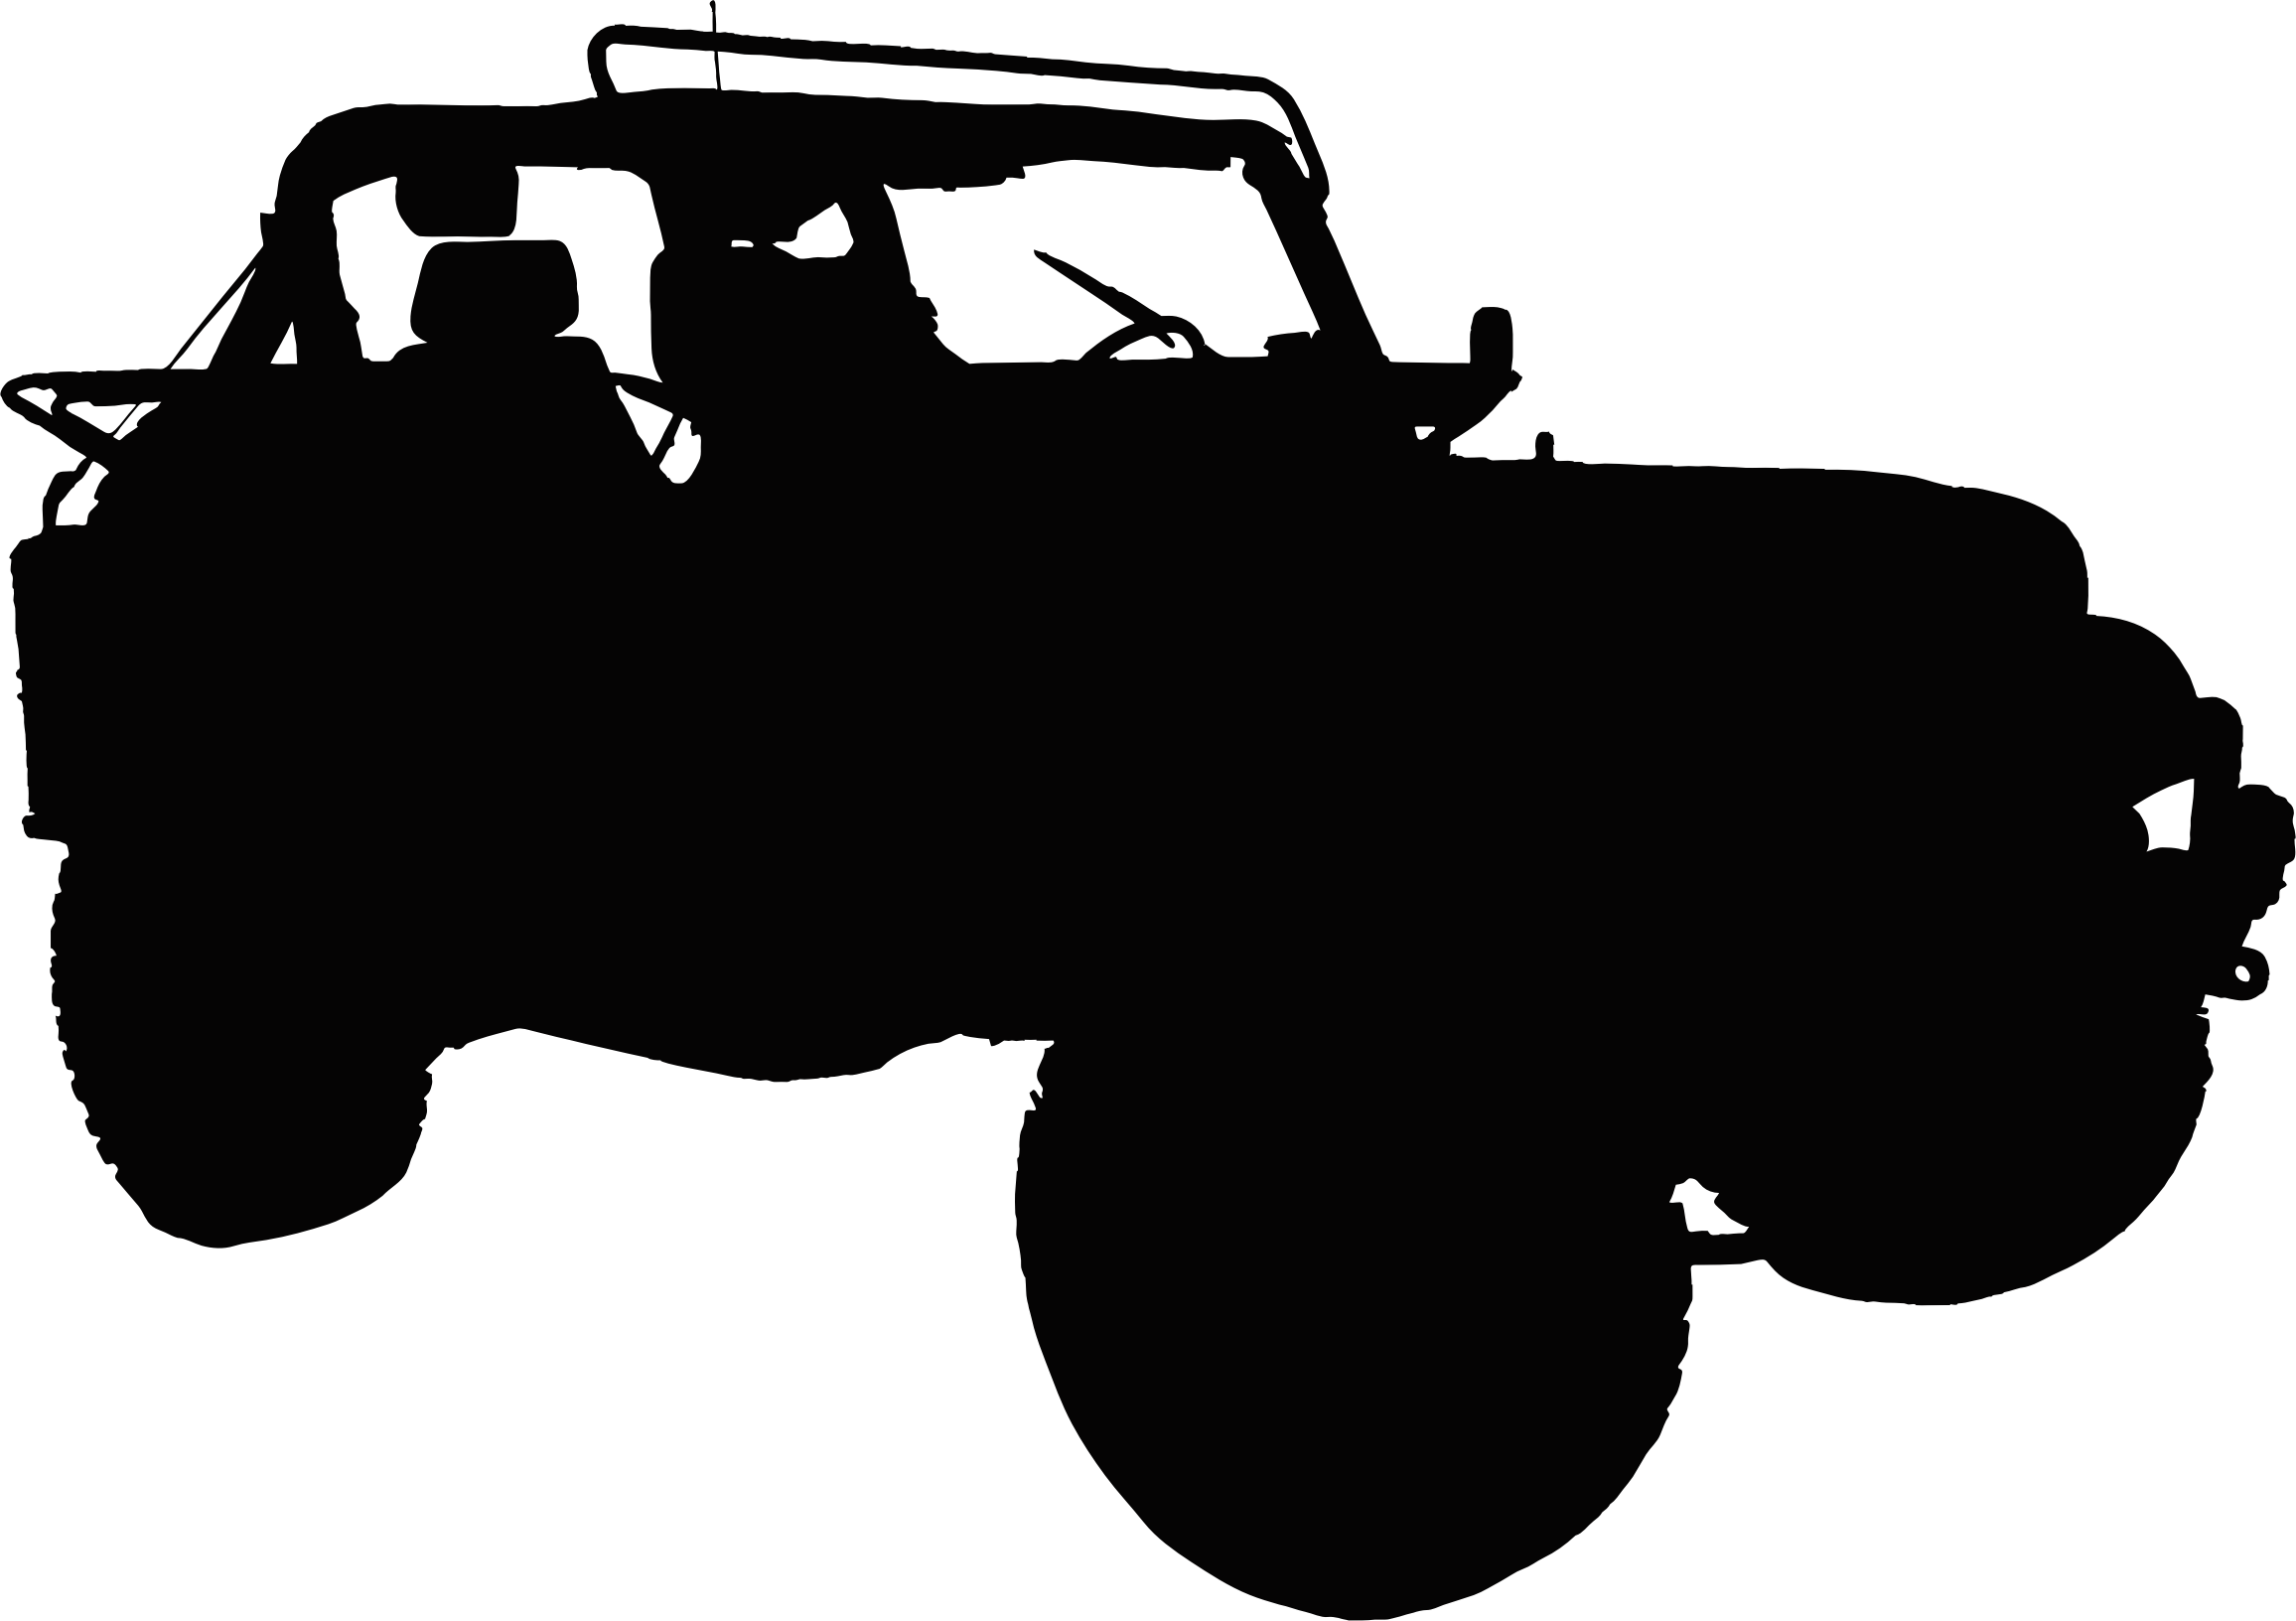 Jeep big image png. Clipart car silhouette